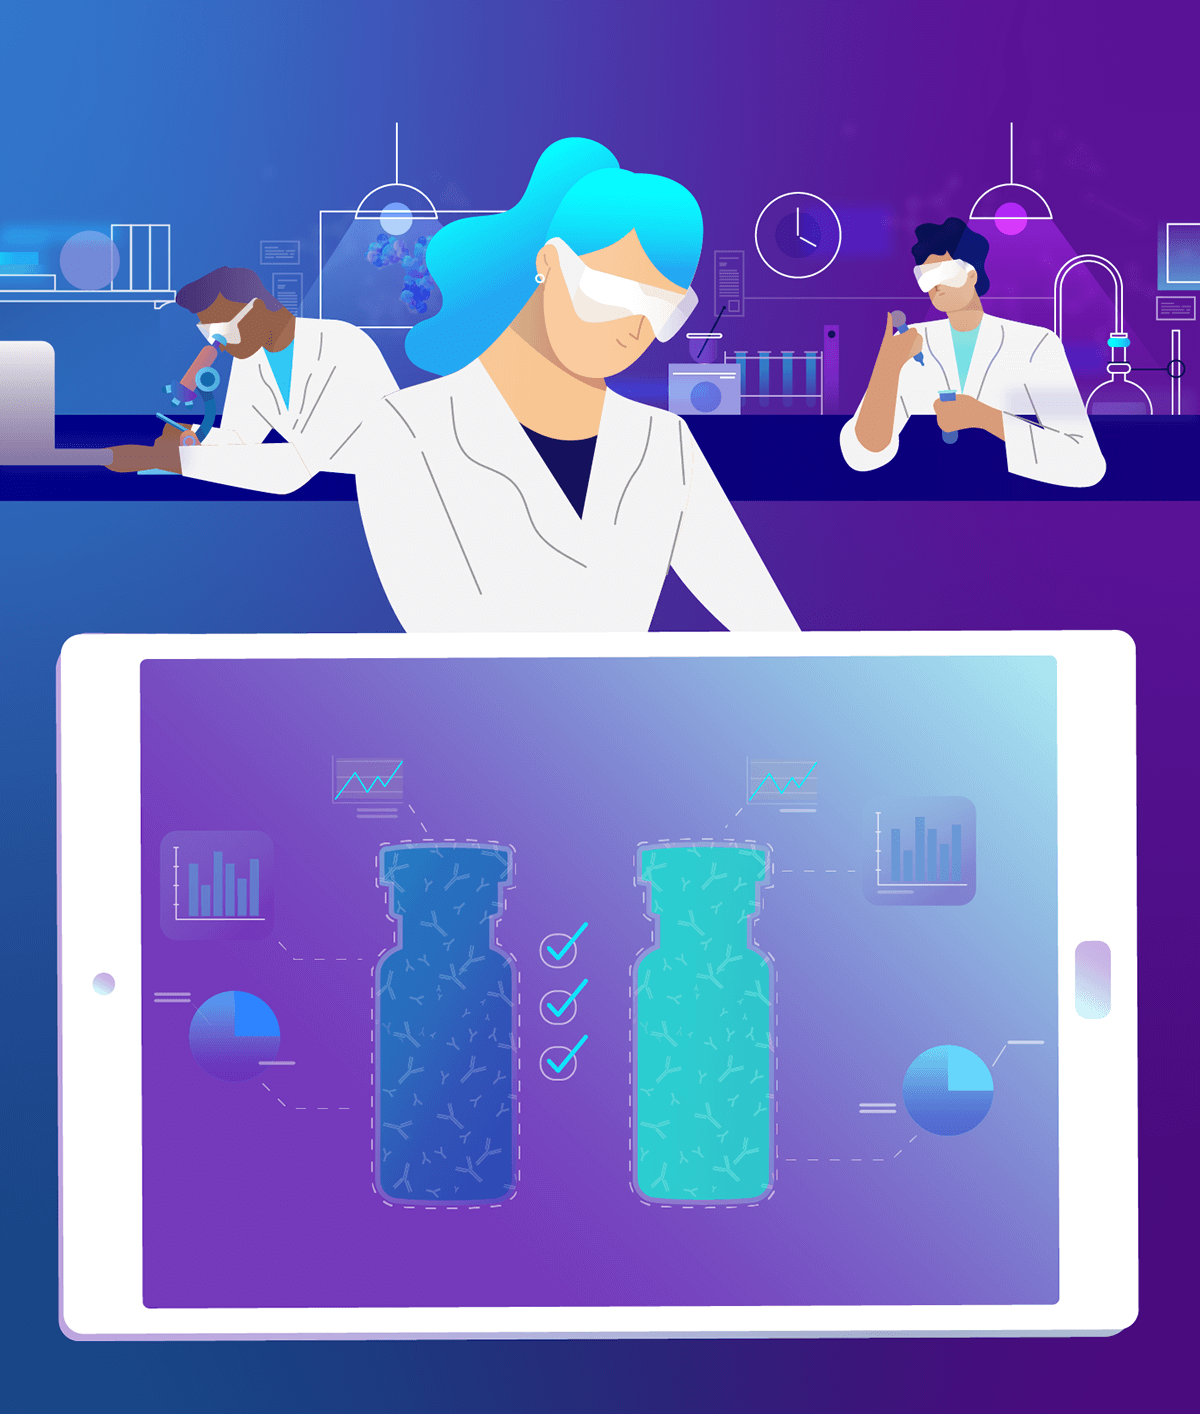 merck animated campaign images